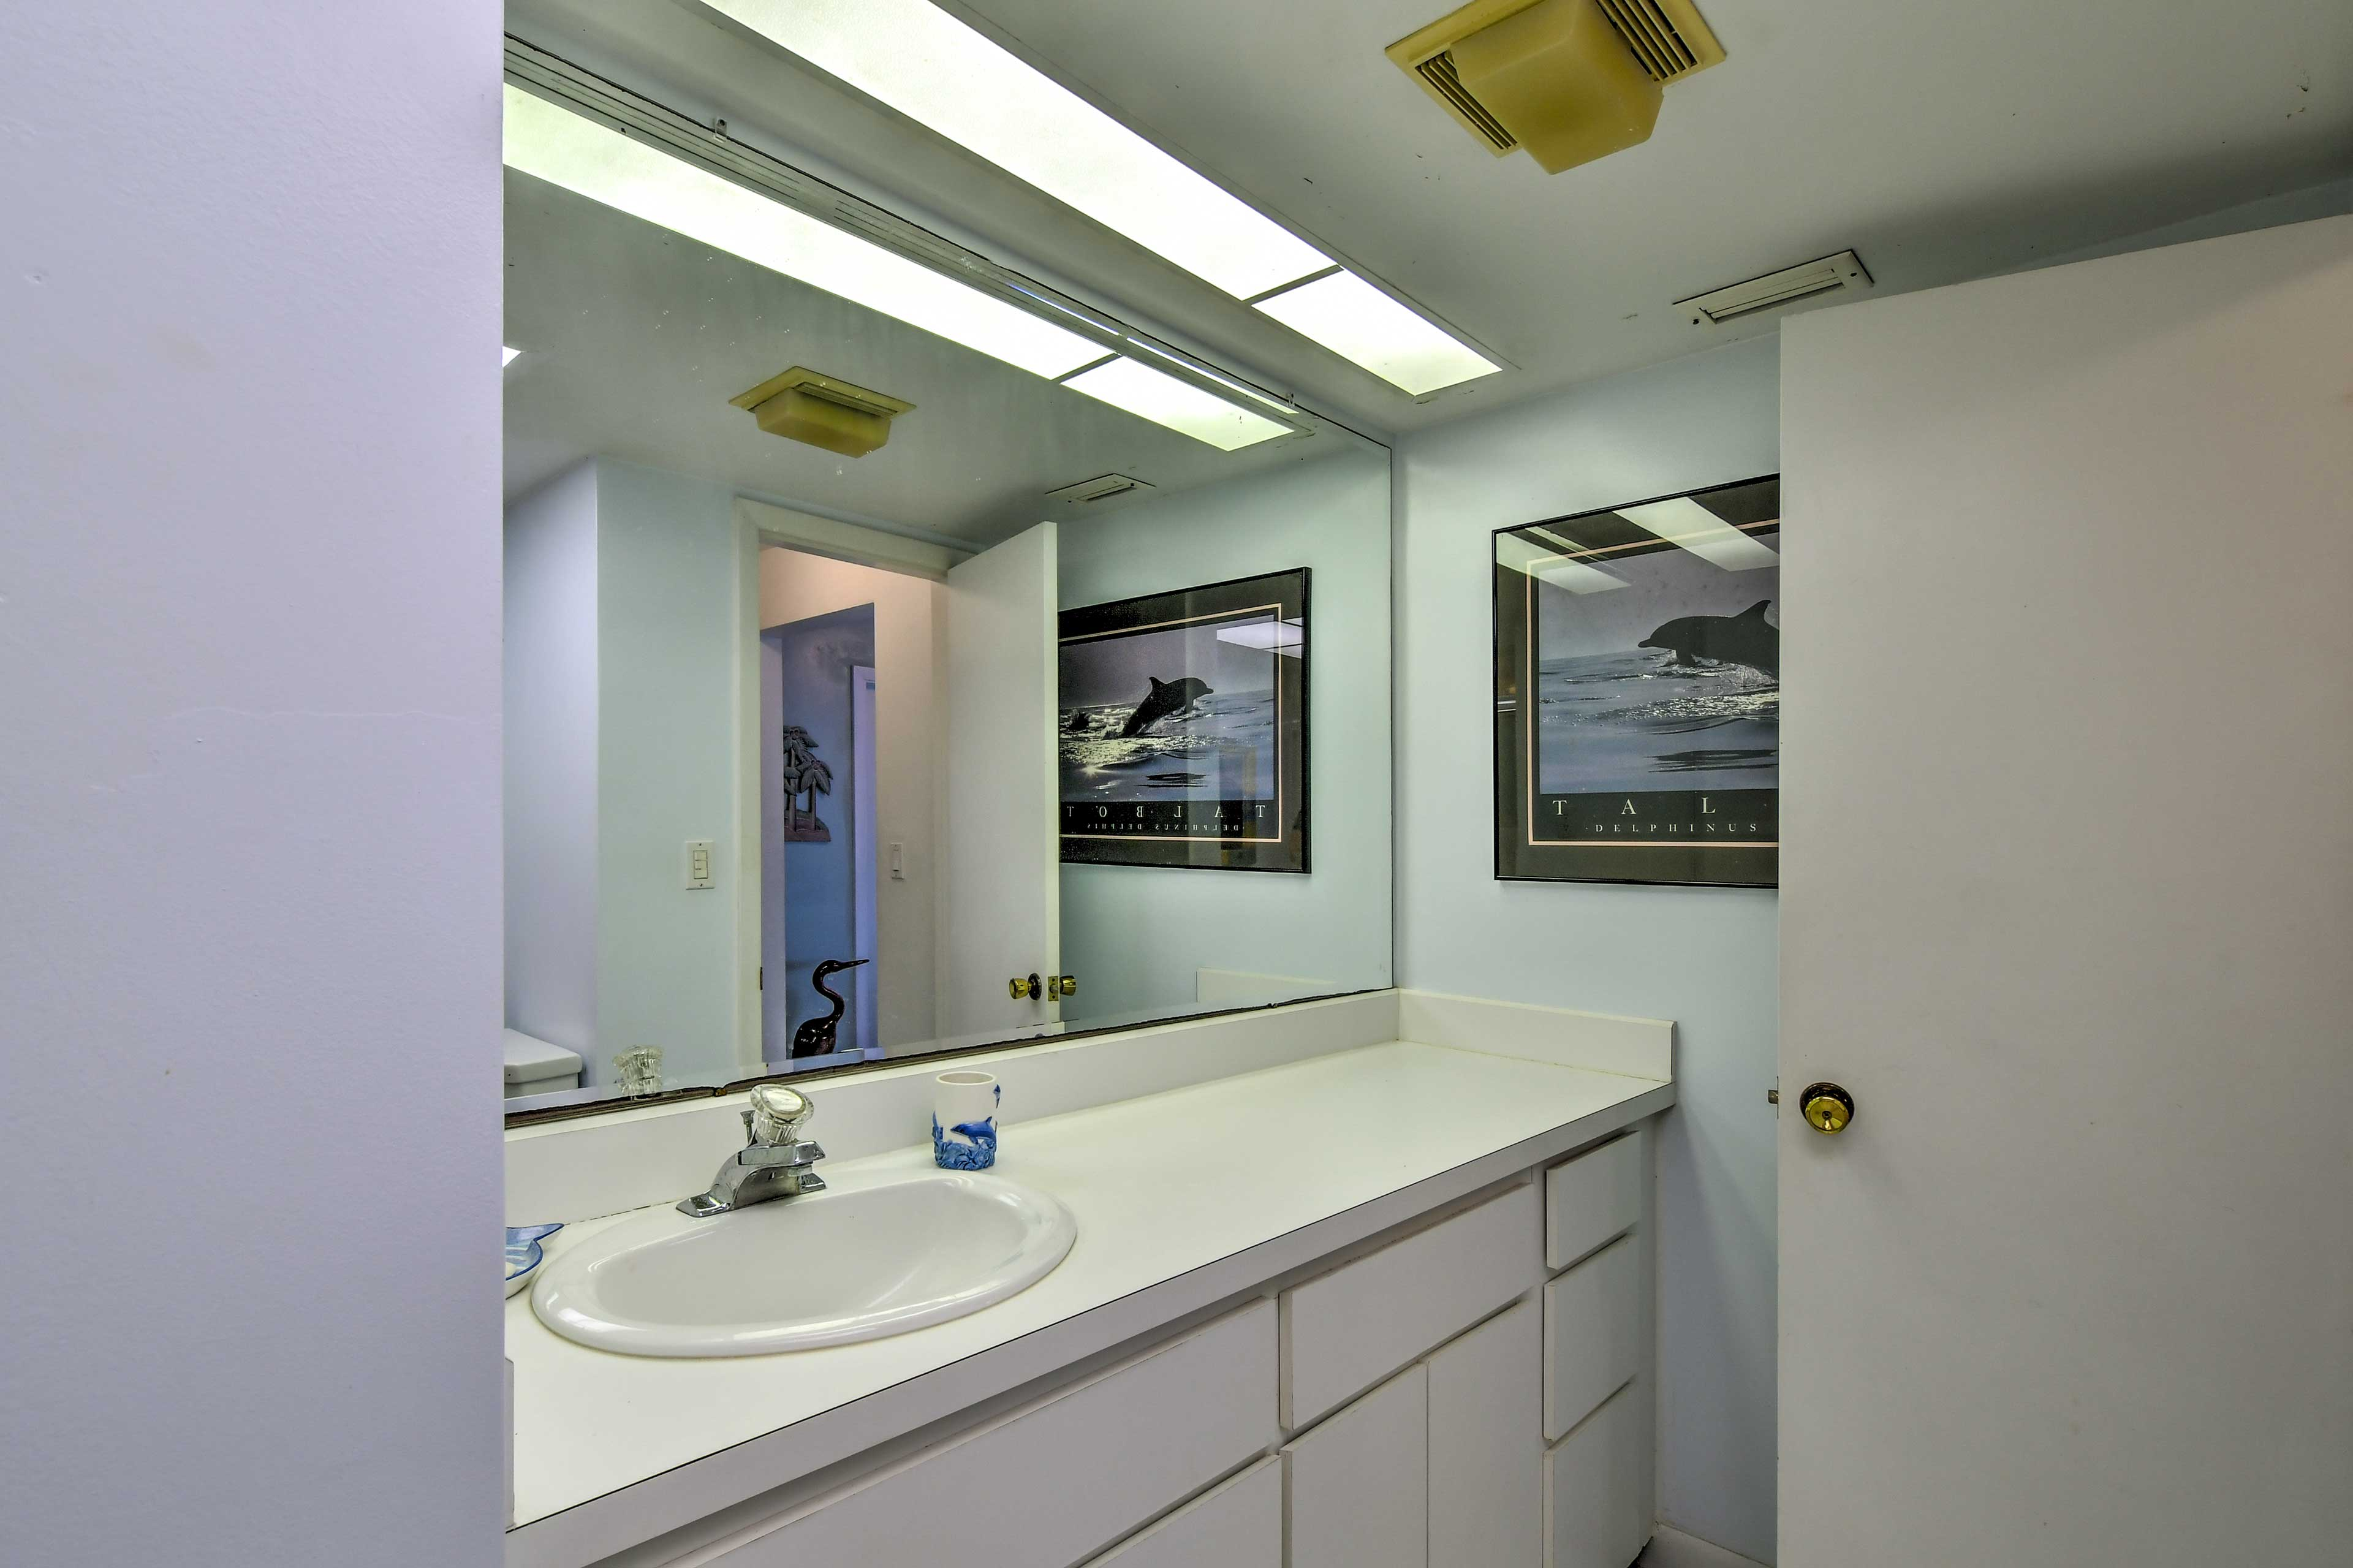 The guest bathroom provides extra space for getting ready each day.